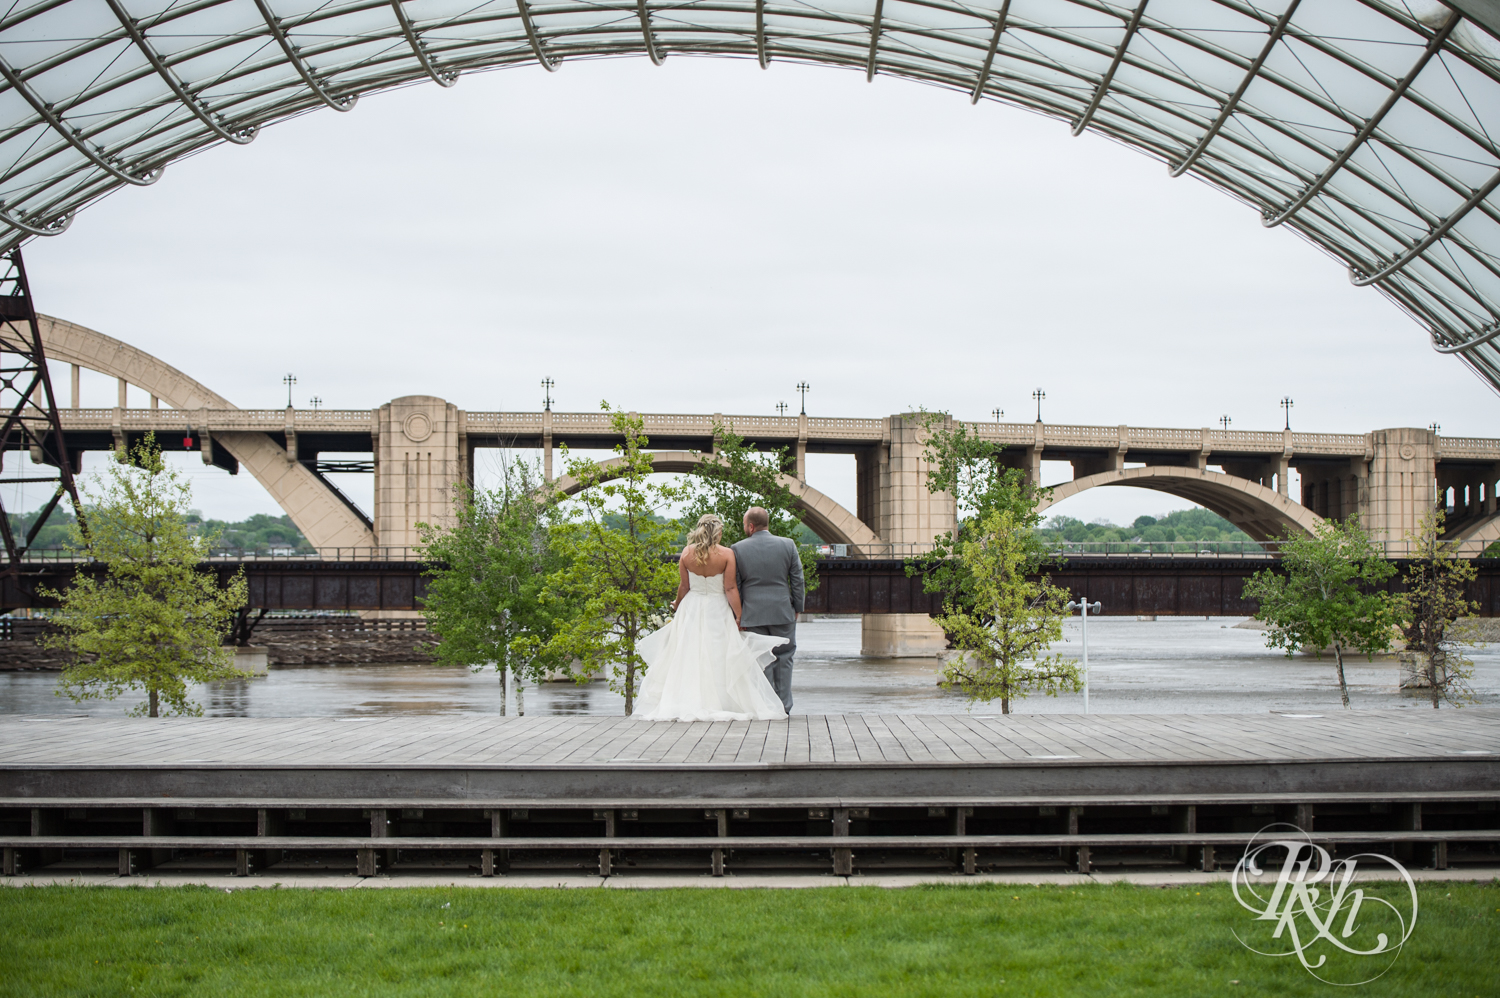 Shannon and Brian - Minnesota Wedding Photography - Raspberry Island - Minnesota Boat Club - RKH Images - Blog  (39 of 60).jpg